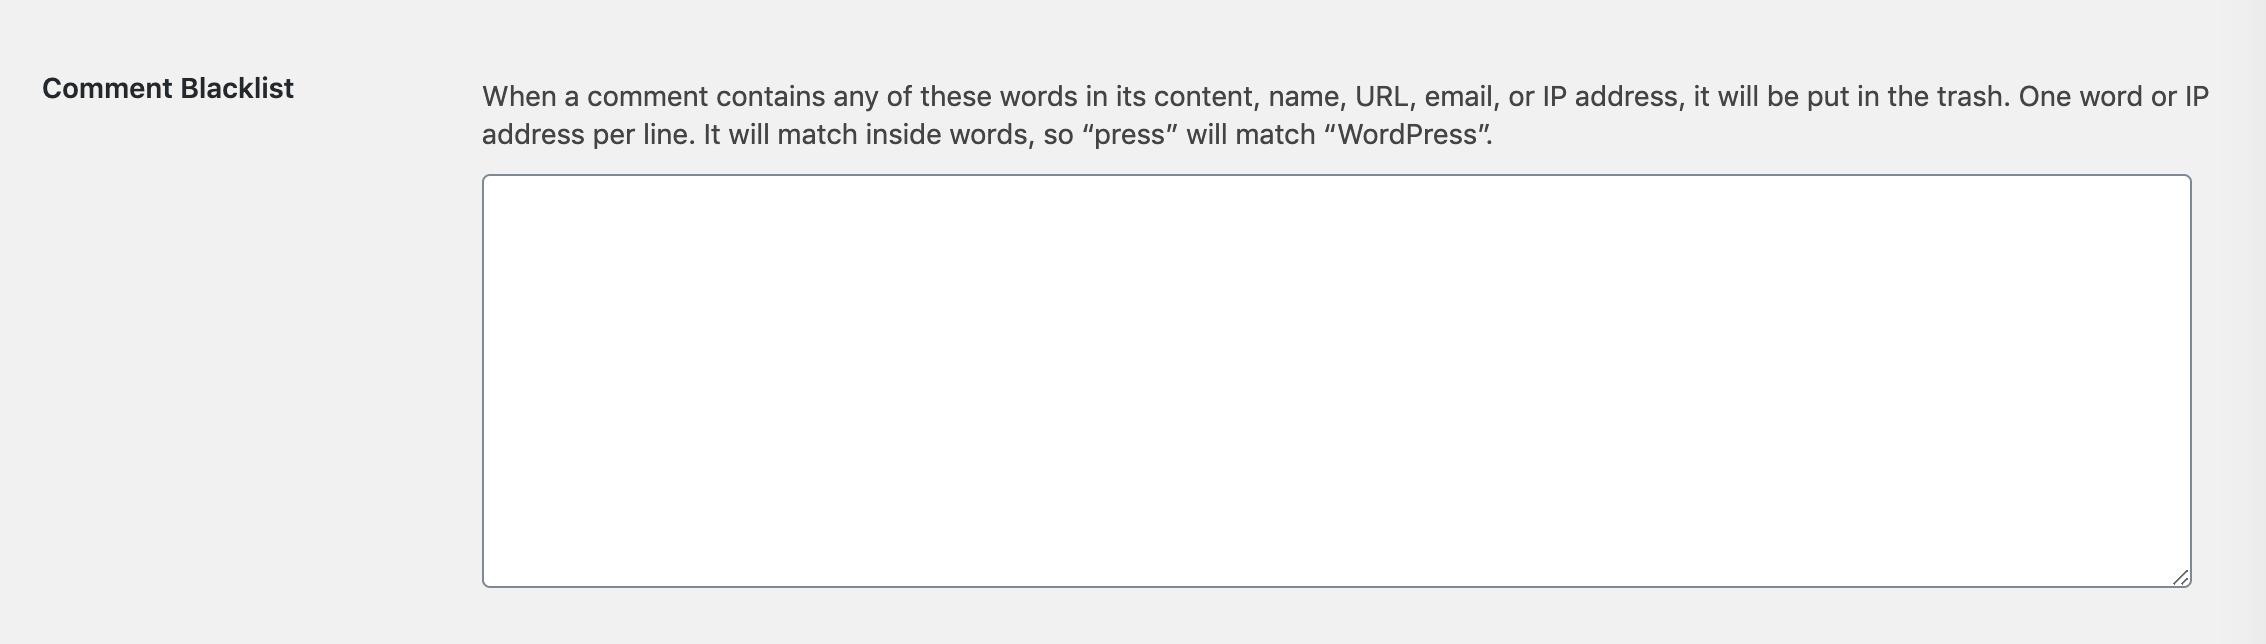 The Comment Blacklist setting in WordPress.